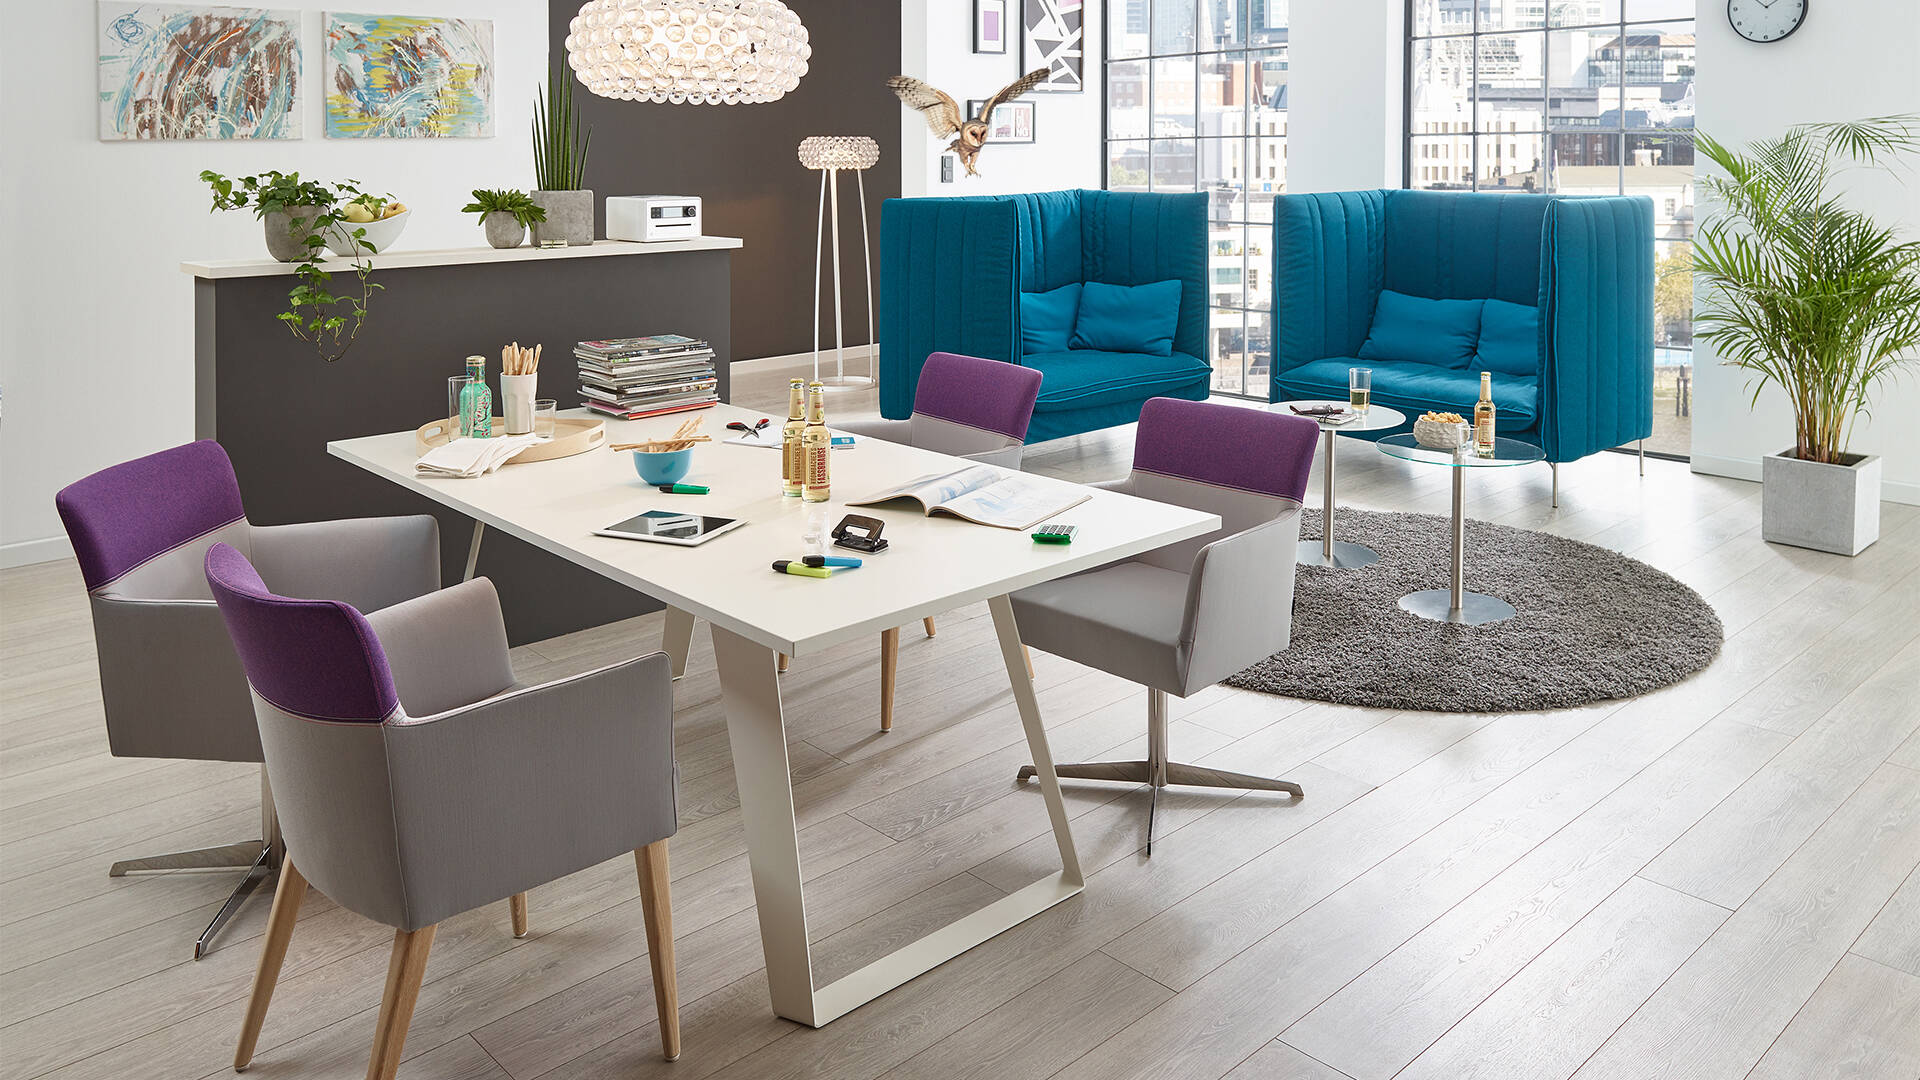 Create individuell rooms and offices with contract furnitures by SMV – armchair Head Up and sound absorbing acoustic sofa FourtyTwo / <i>Individuell Räume gestalten mit Objektmöbeln von SMV – Stuhl Head Up und akustisch-wirksames Sofa FourtyTwo</i>